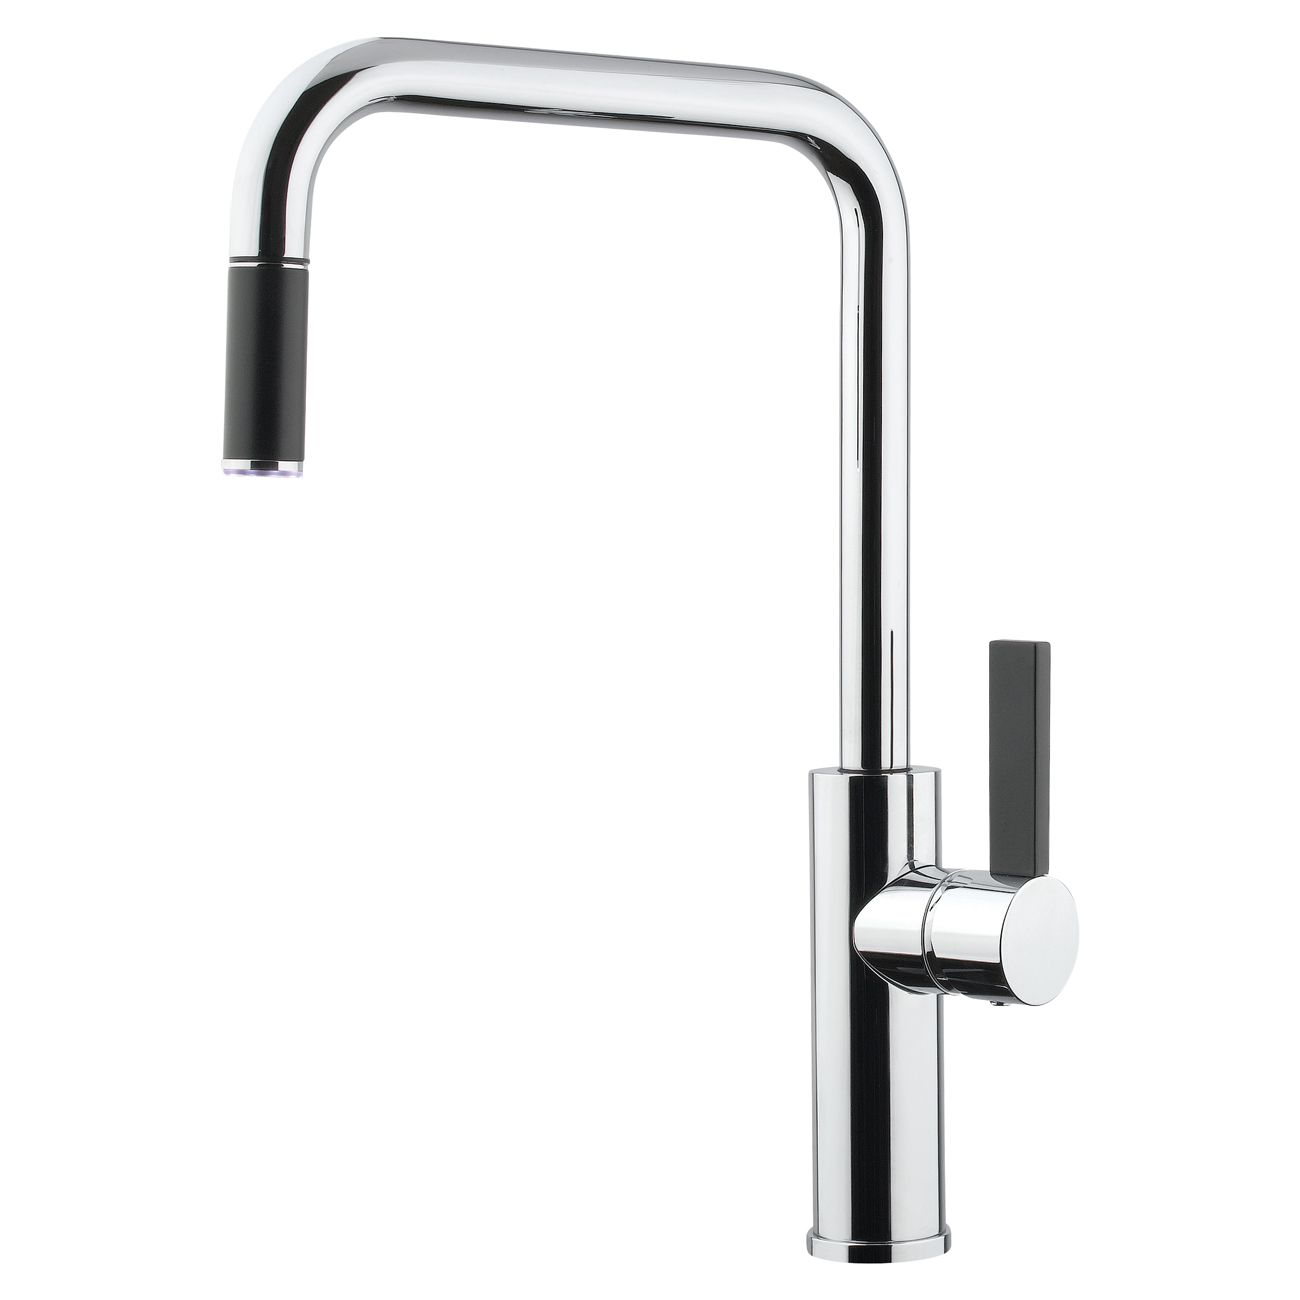 blanco galaxy kitchen tap with pull out hose sinks. Black Bedroom Furniture Sets. Home Design Ideas